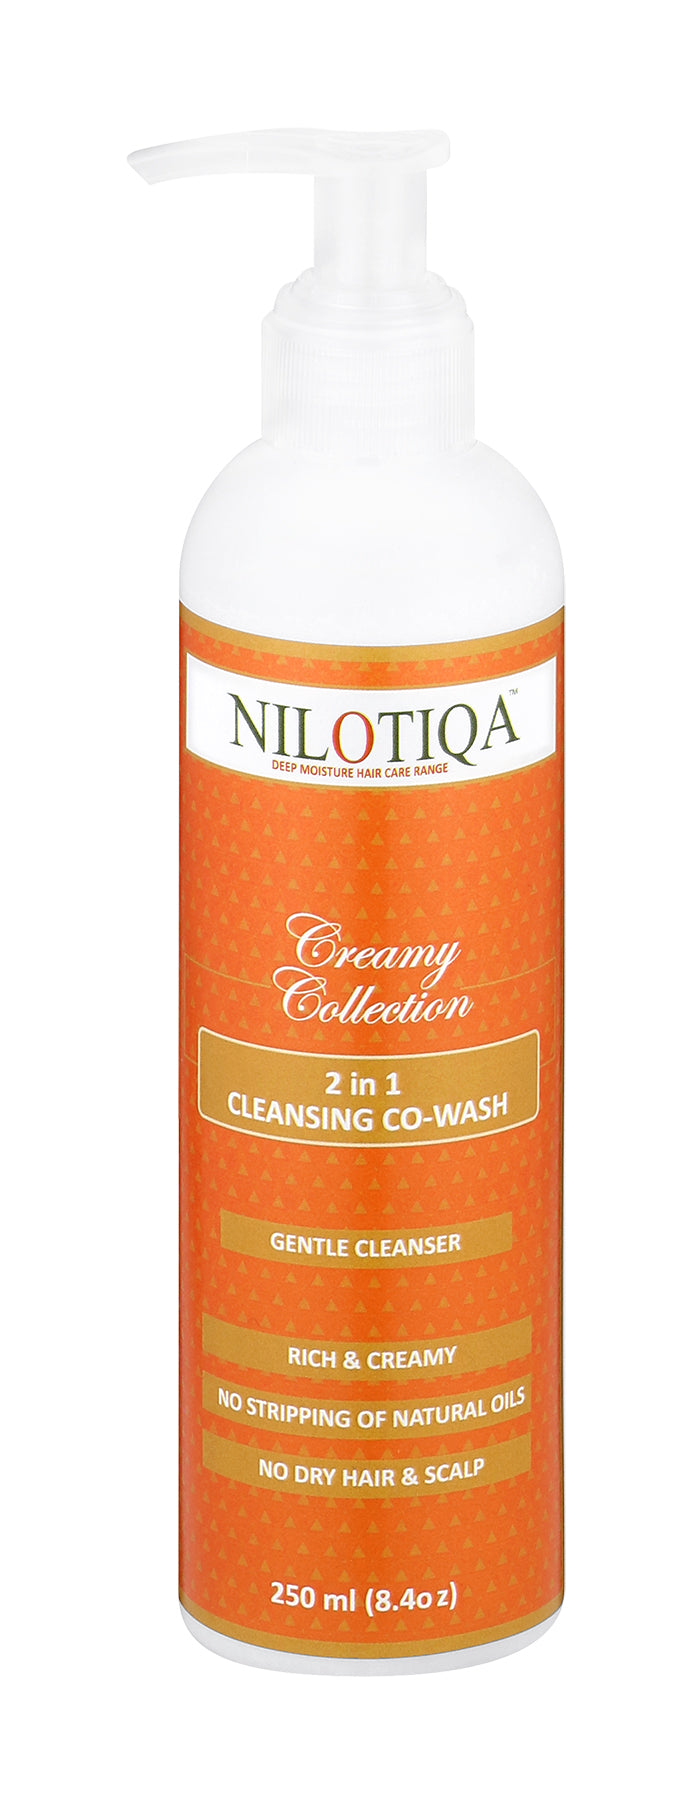 250ml 2-in-1 Cleansing Co-Wash